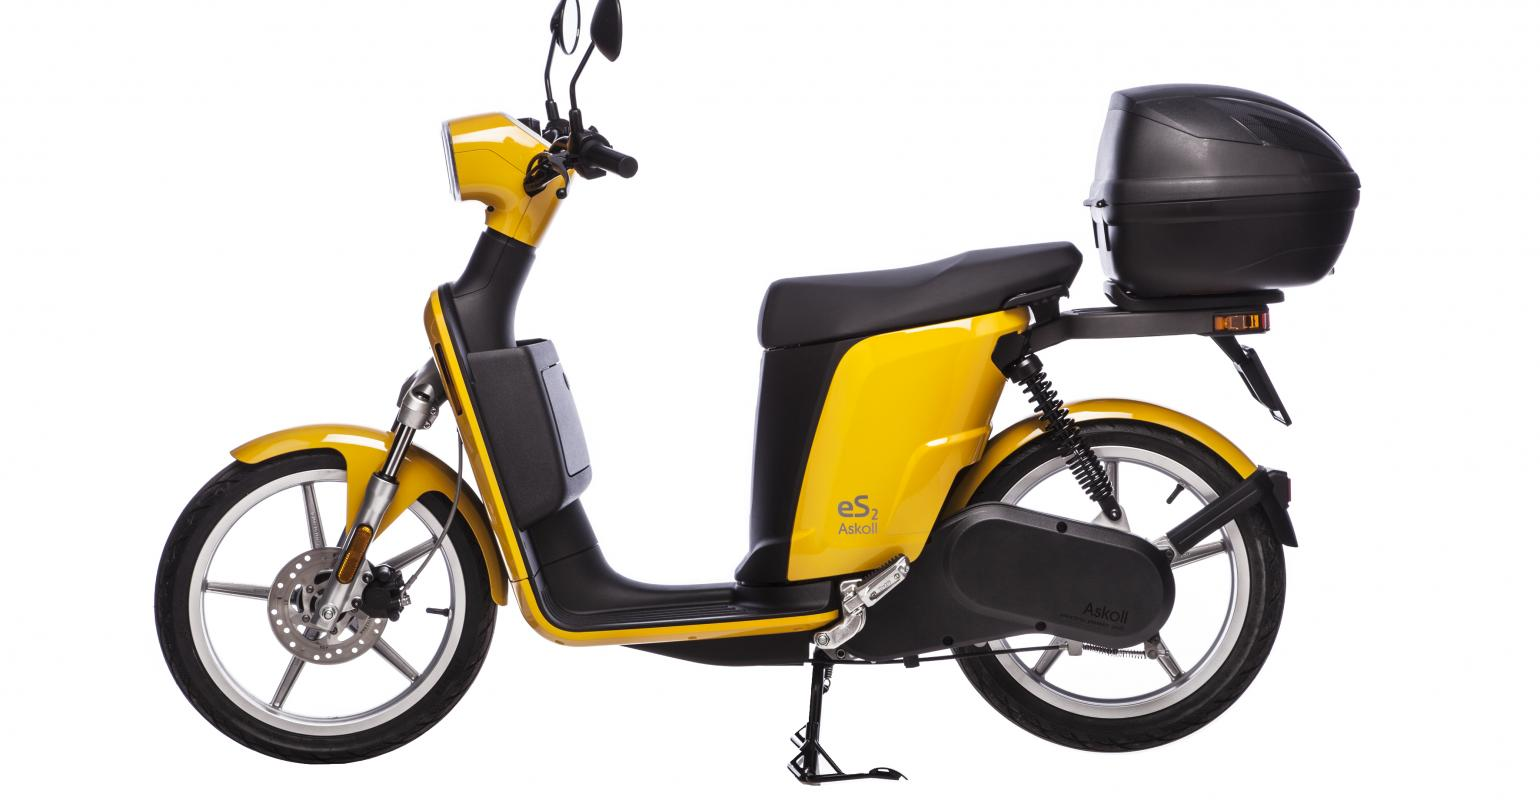 Electric bike turns to PBT/ASA blend for battery housing components |  plasticstoday.com